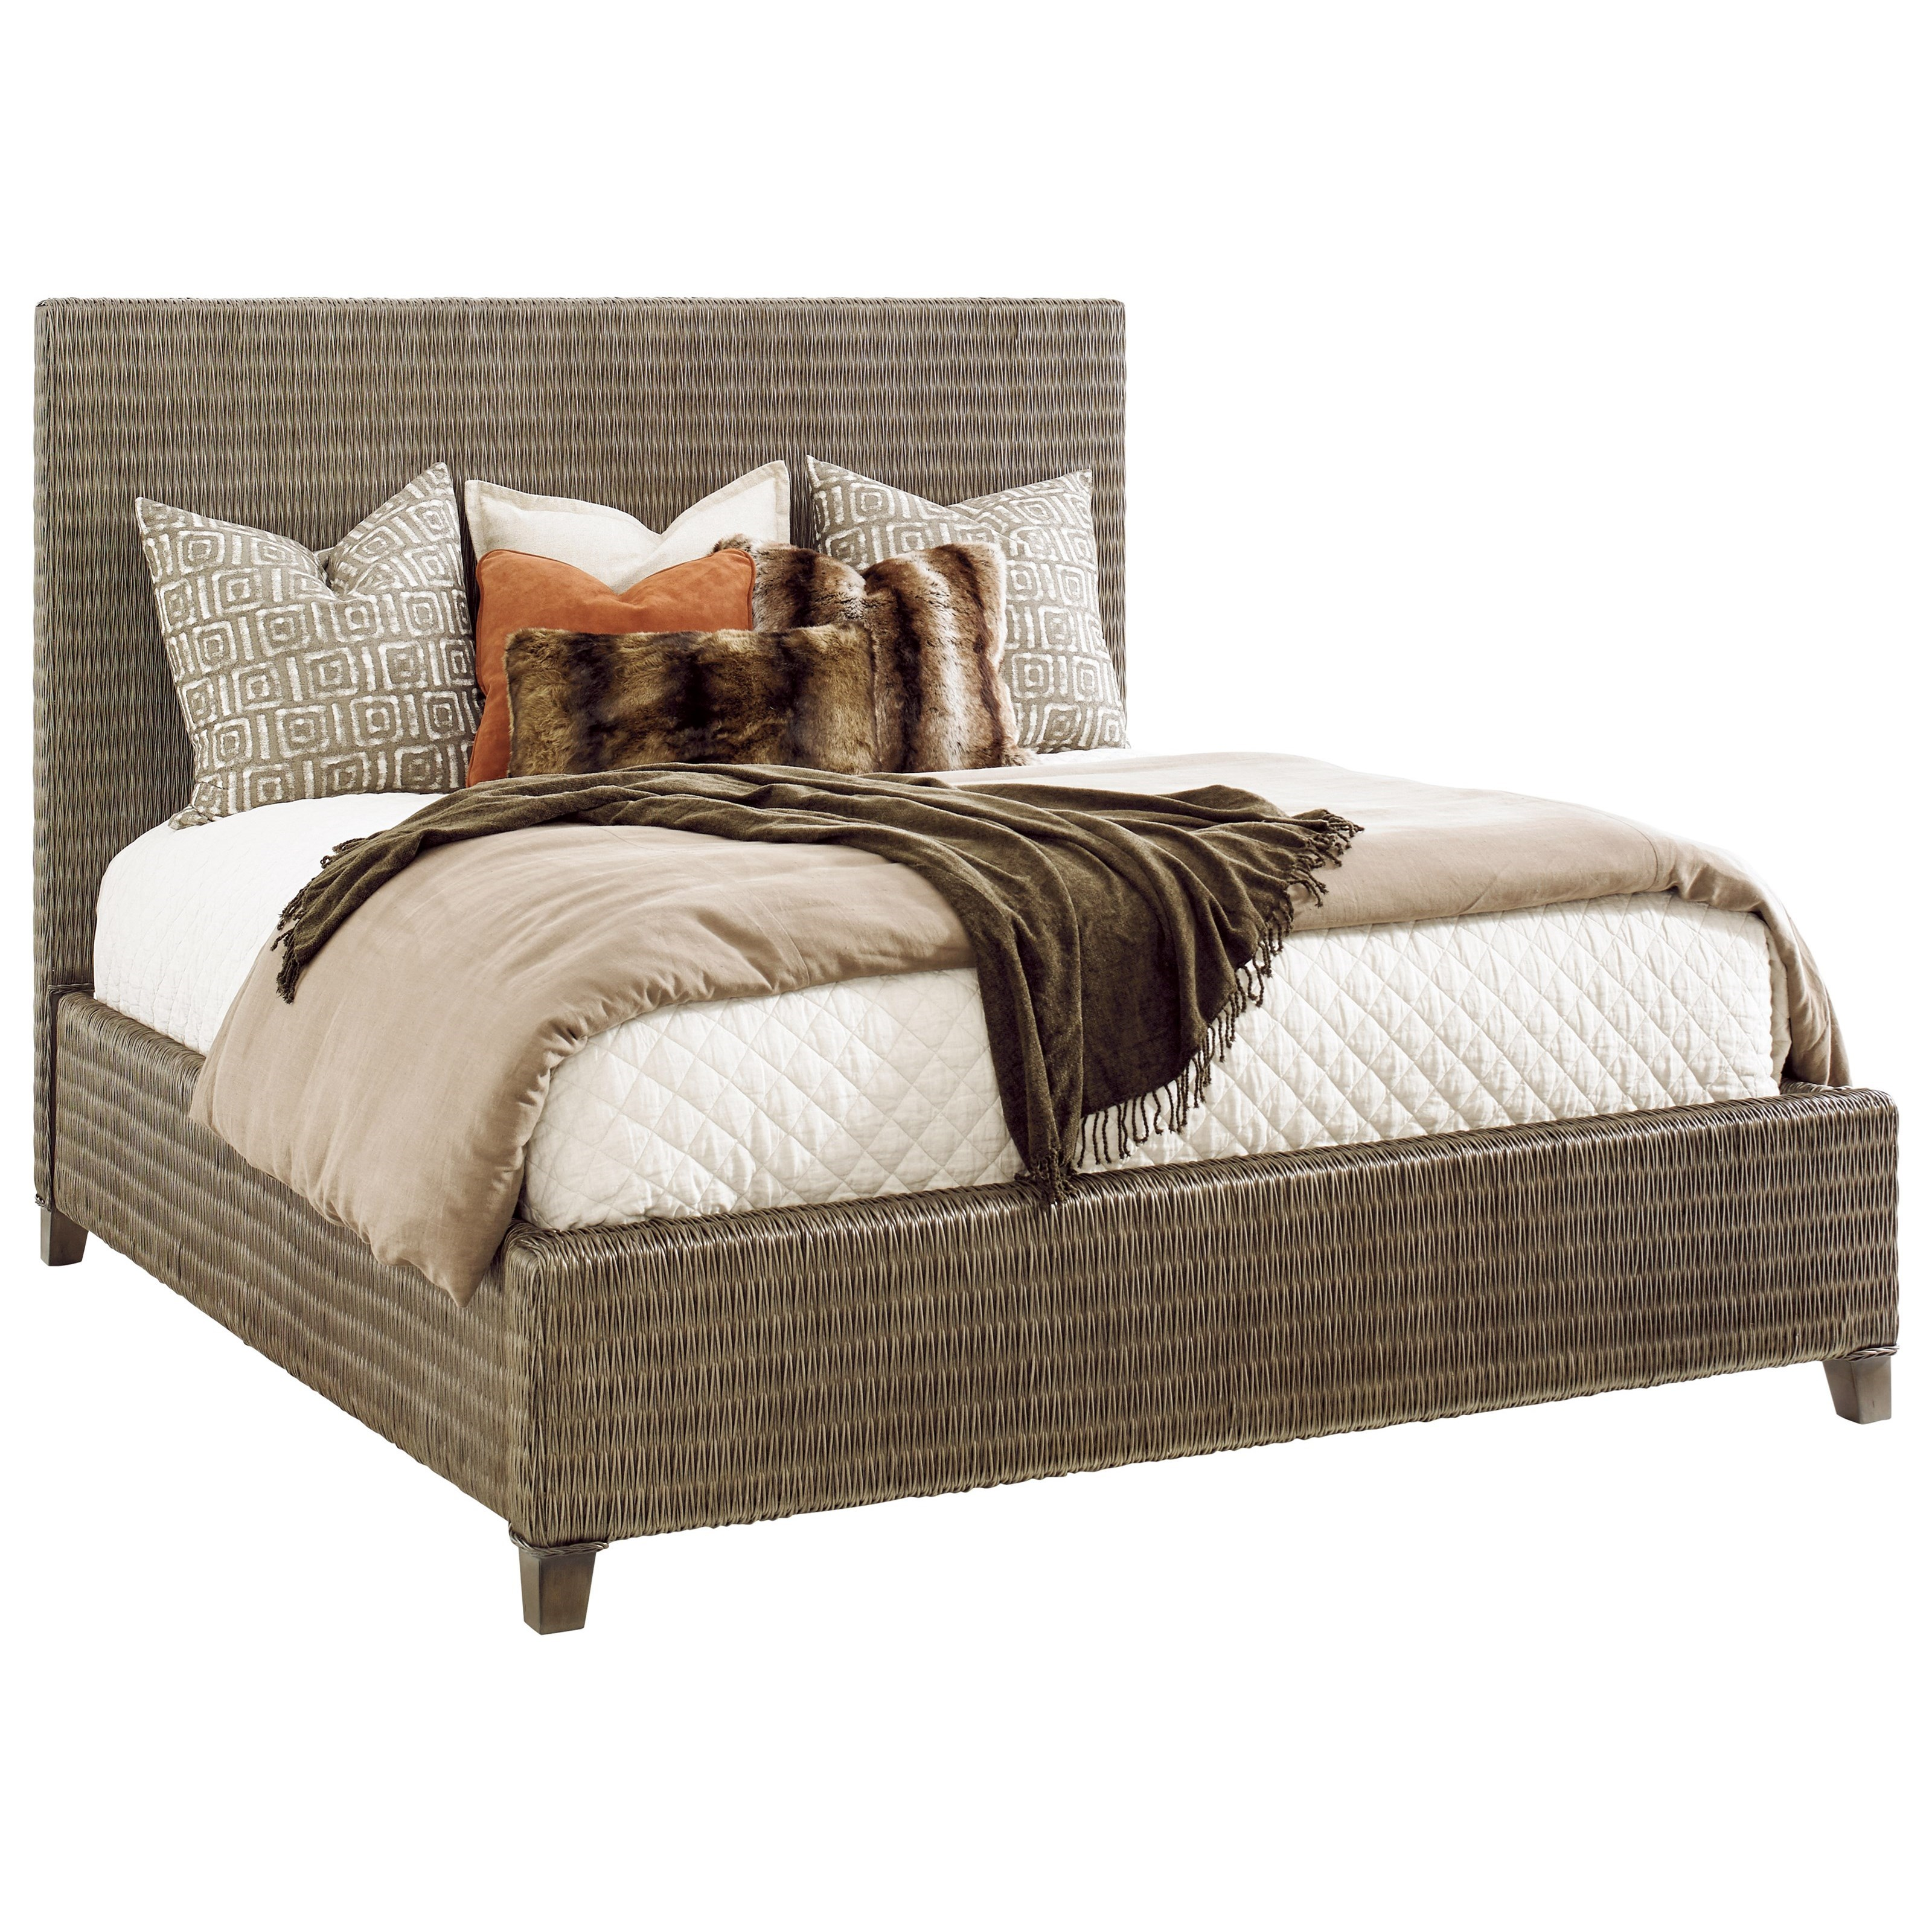 Cypress Point Driftwood Isle Woven Platform Bed 6/6 King by Tommy Bahama Home at Baer's Furniture